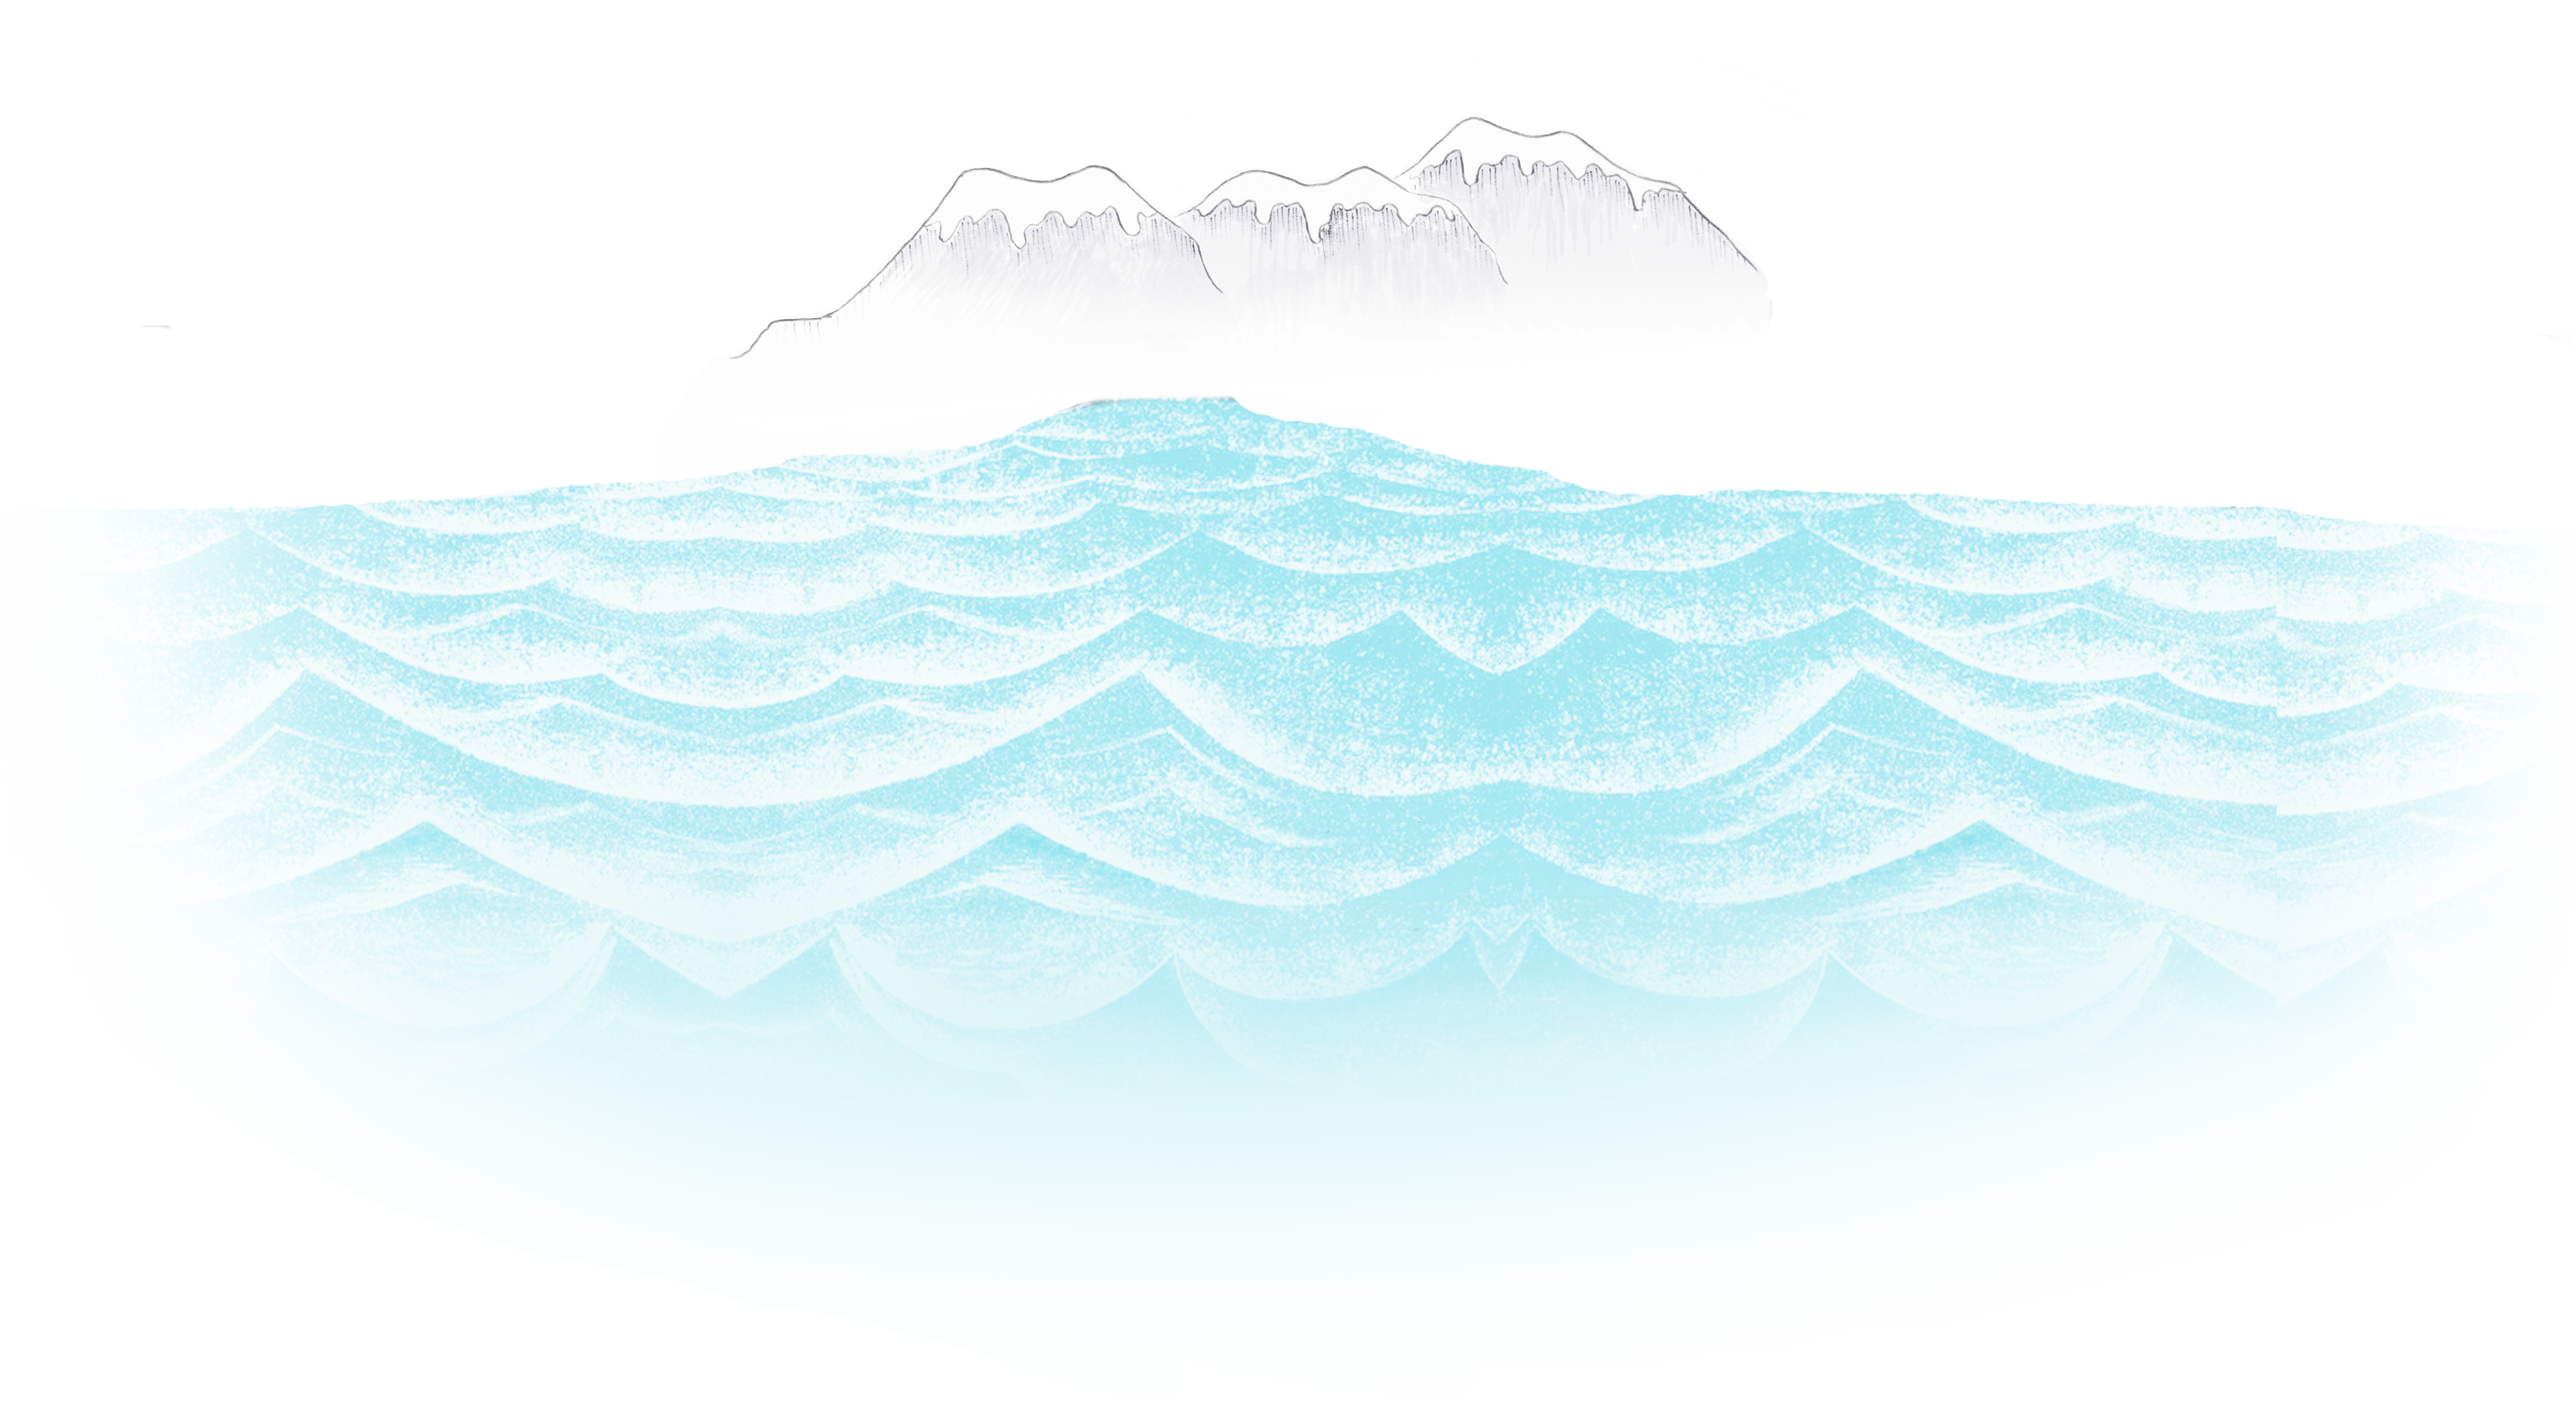 Glacier clipart tip iceberg. Finding neverbland a journey